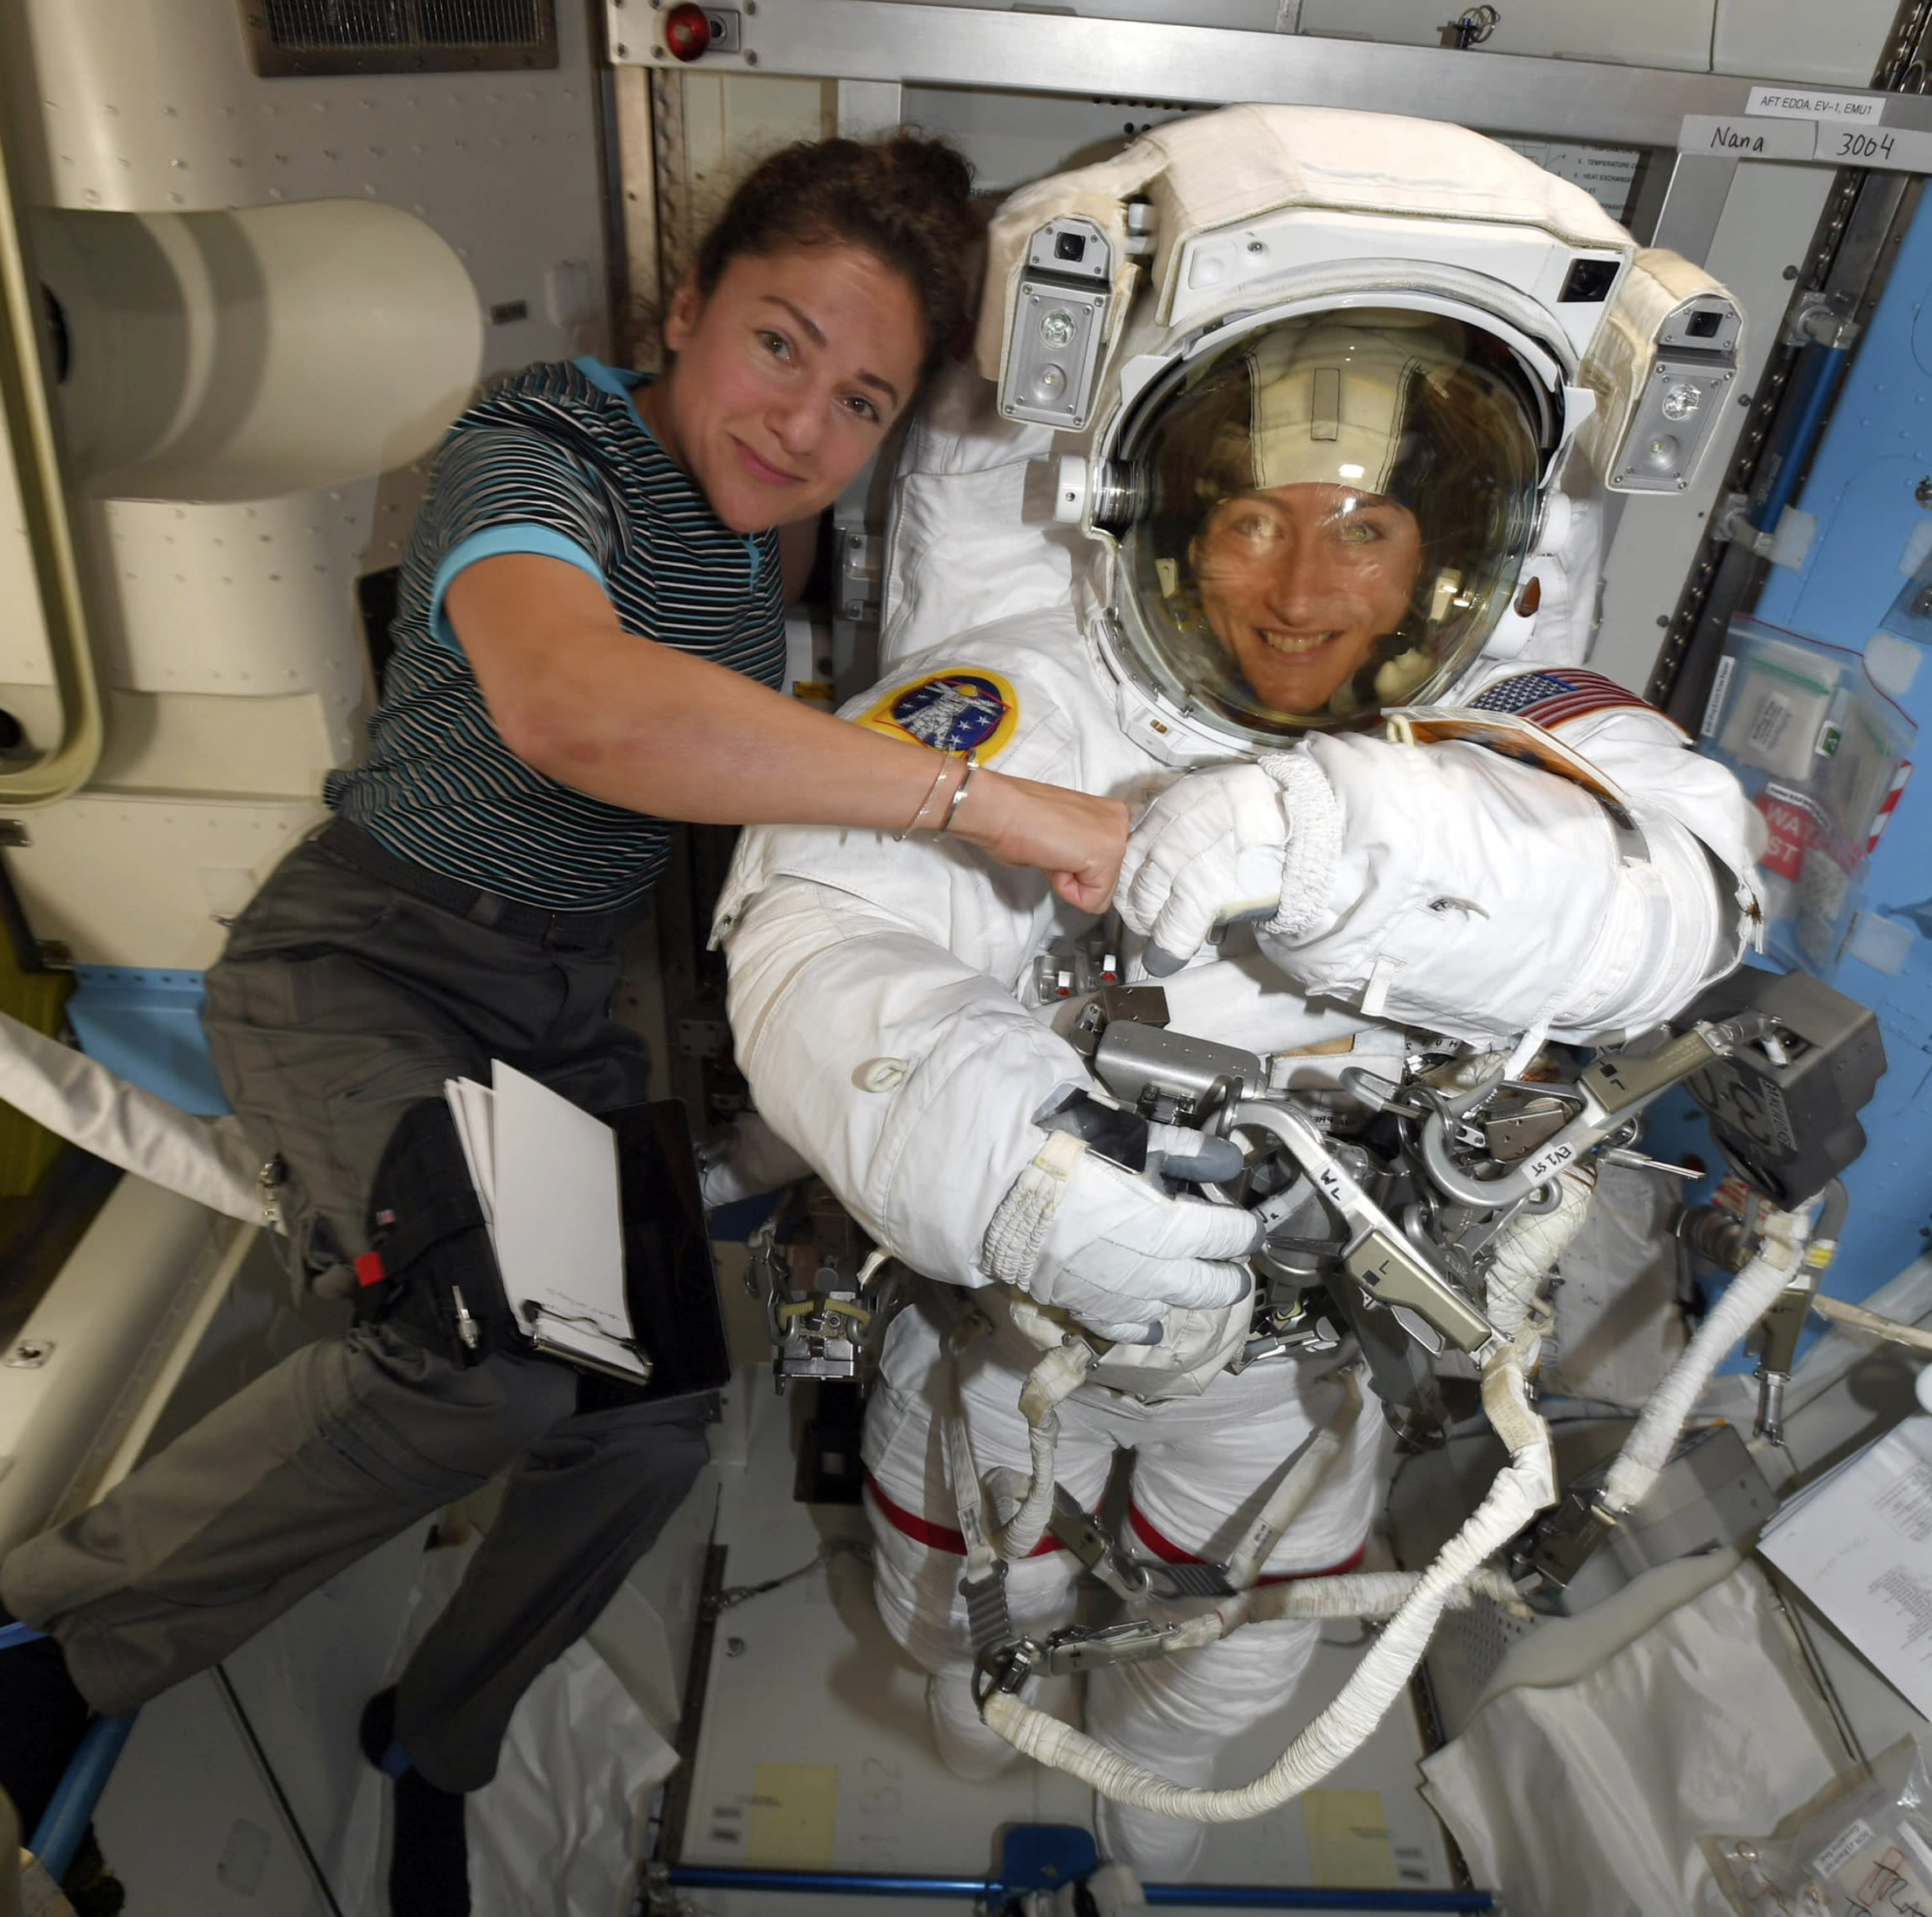 Astronauts replacing space station's old batteries in first of five spacewalks